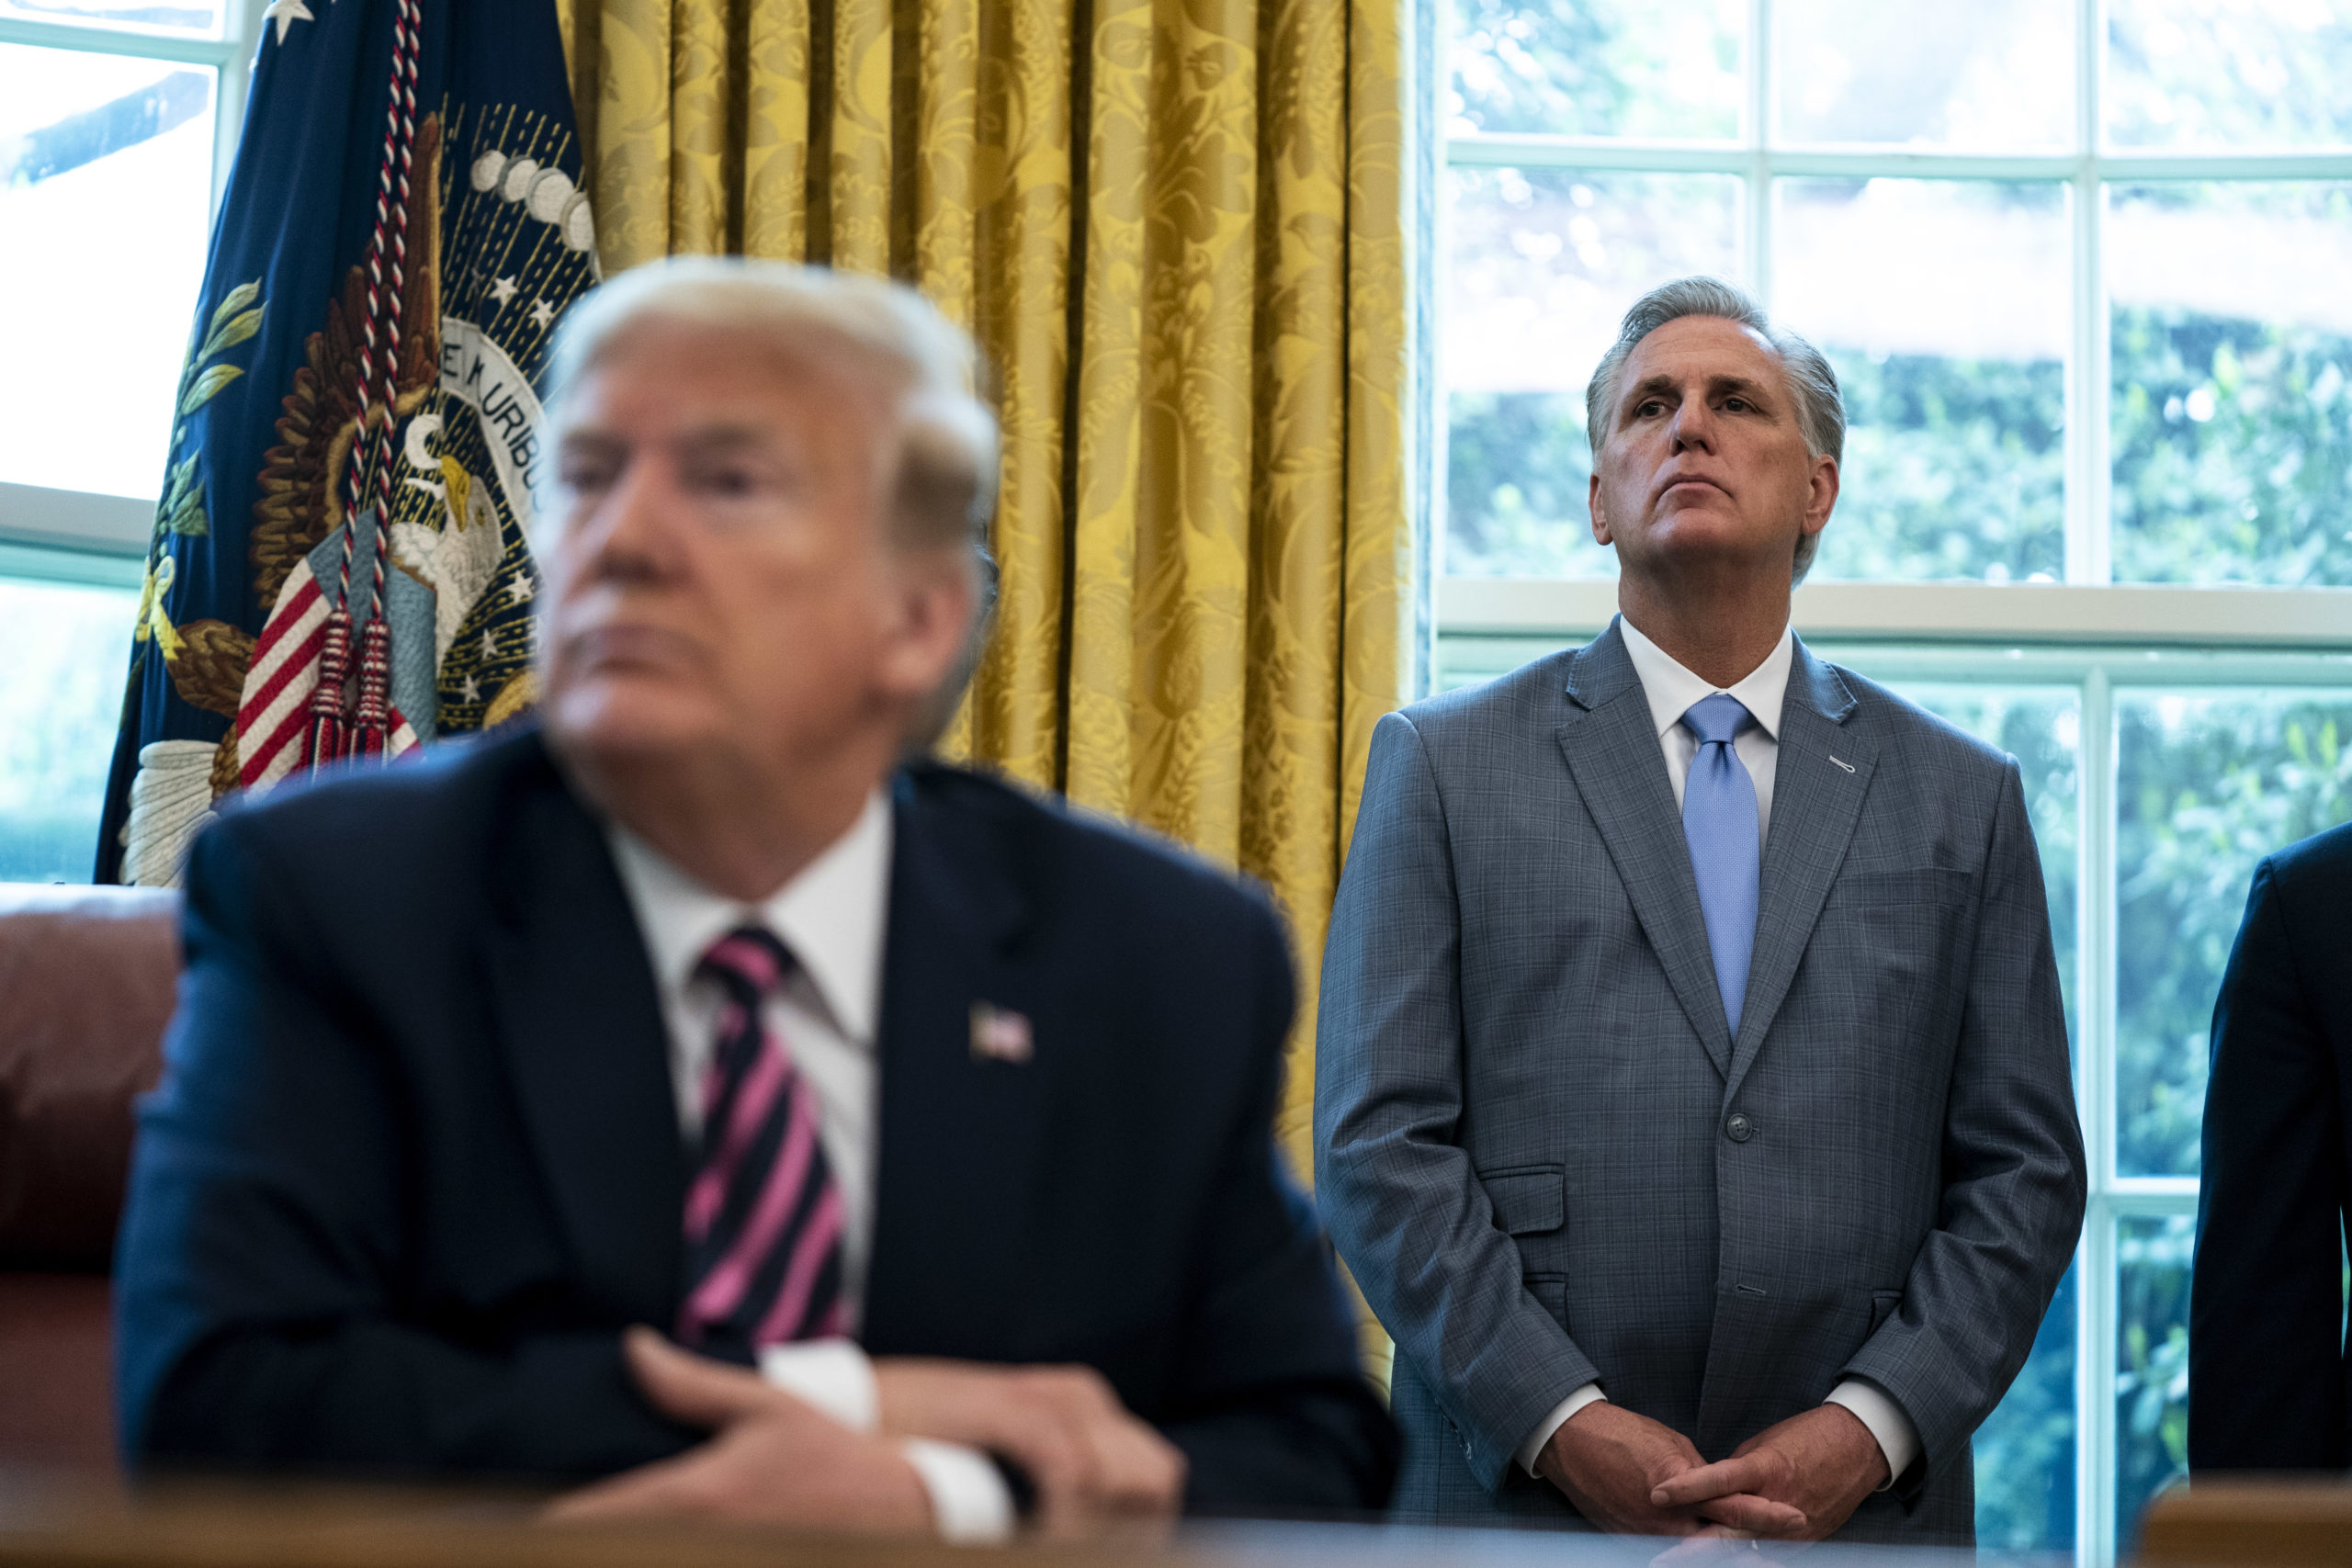 WASHINGTON, DC - APRIL 24: House Minority Leader Rep. Kevin McCarthy (R-CA) and U.S. President Donald Trump attend a signing ceremony for H.R. 266, the Paycheck Protection Program and Health Care Enhancement Act, in the Oval Office of the White House on April 24, 2020 in Washington, DC. The bill includes an additional $321 billion for the Paycheck Protection Programs forgivable loans to cover payroll and other costs for small businesses. Hospitals and other health care providers will receive $75 billion and another $25 billion is allocated for COVID-19 testing. (Photo by Anna Moneymaker/The New York Times/POOL/Getty Images)